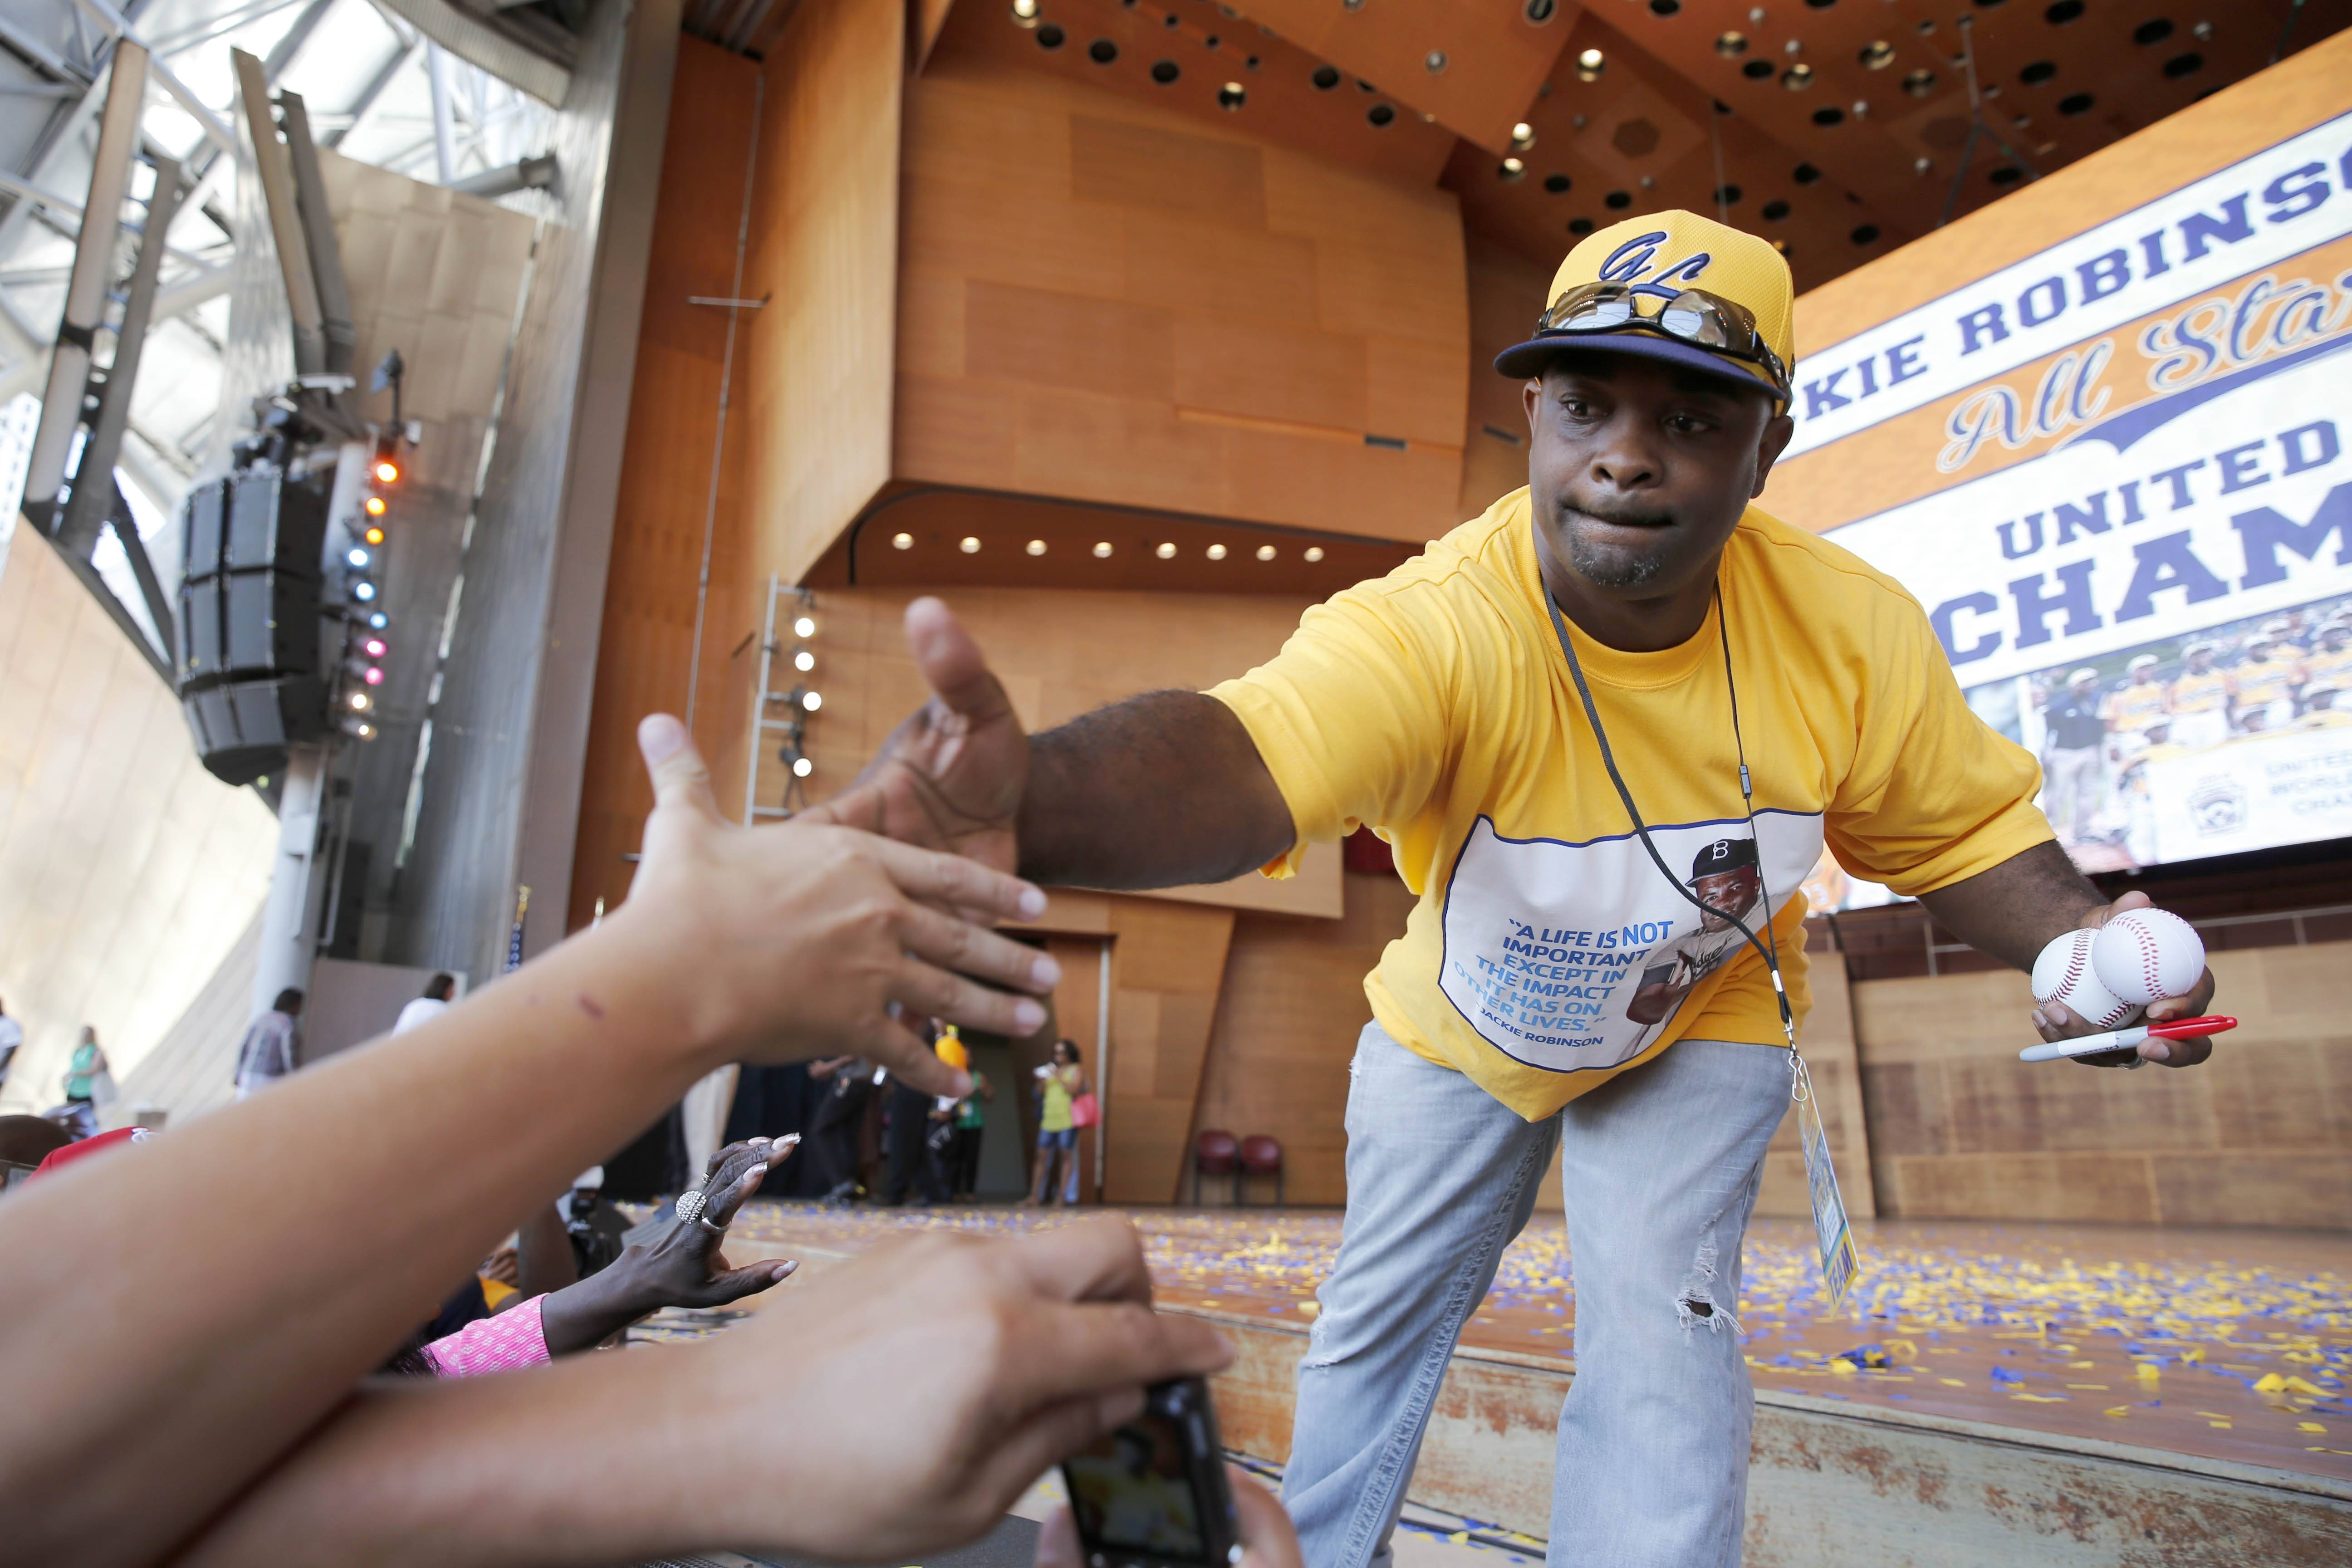 Jackie Robinson West All Stars Little League Baseball team manager Darold Butler shakes the hand of a fan as his team participate in a rally to celebrate the team's U.S. Little League Championship Wednesday at Chicago's Millennium Park.